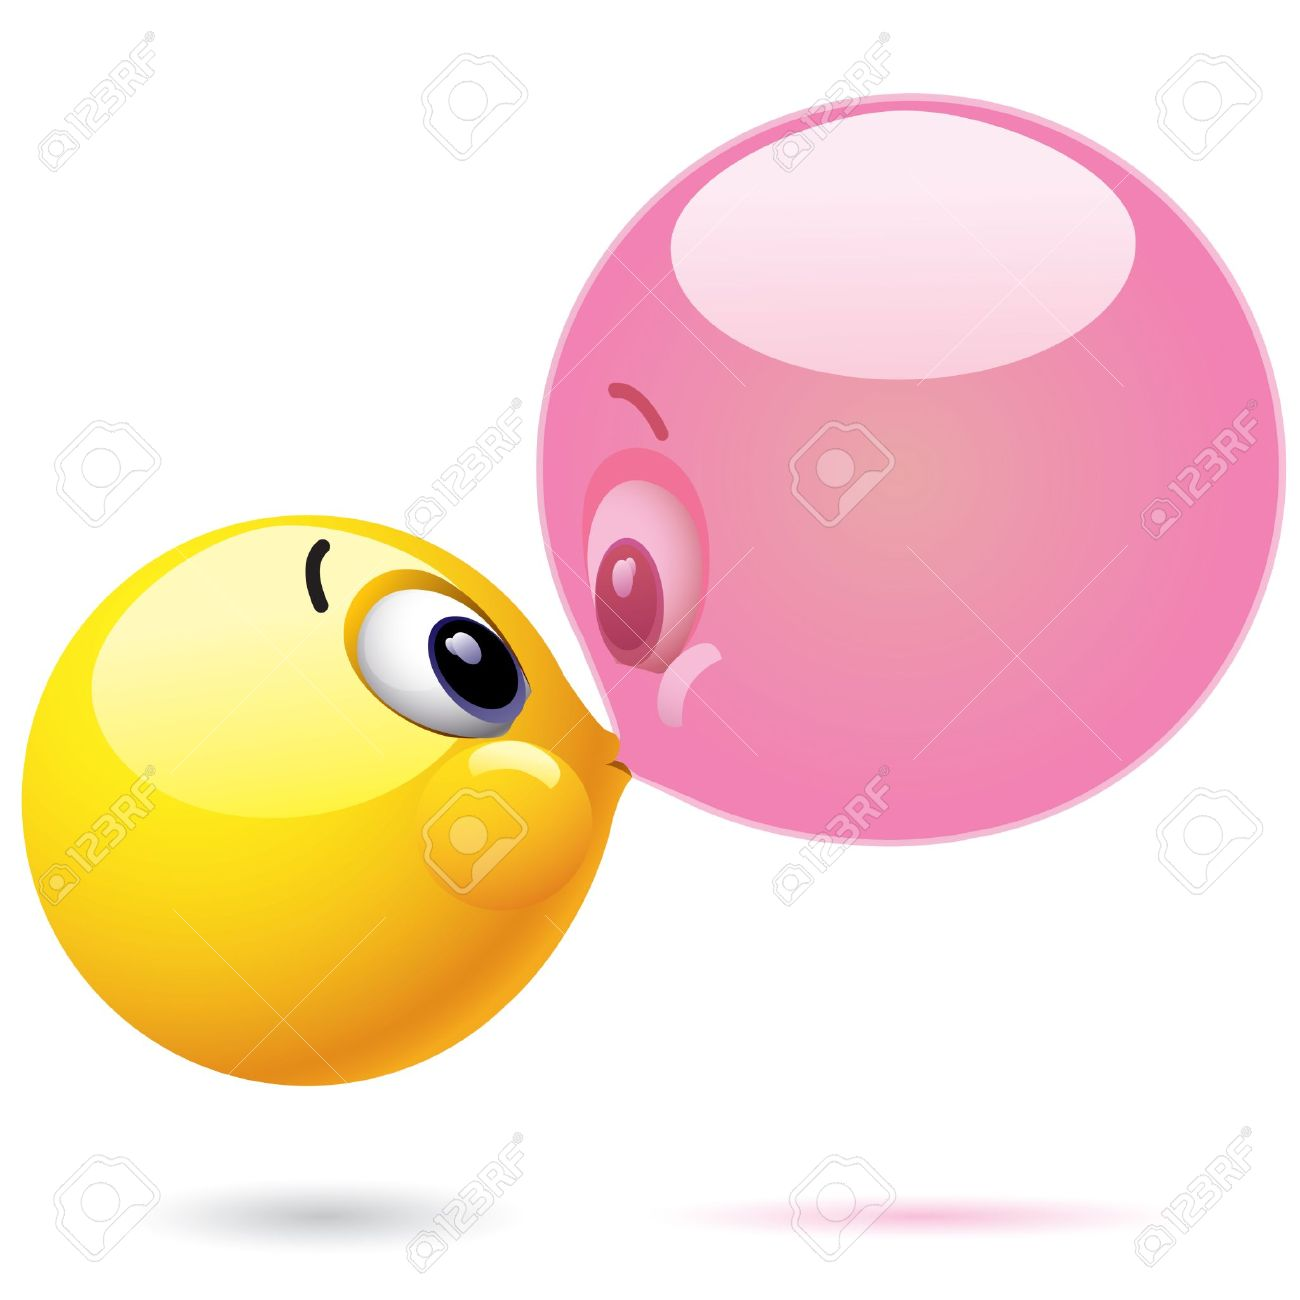 Chewing Gum clipart blowing bubble 852 collection Blowing bubble 2